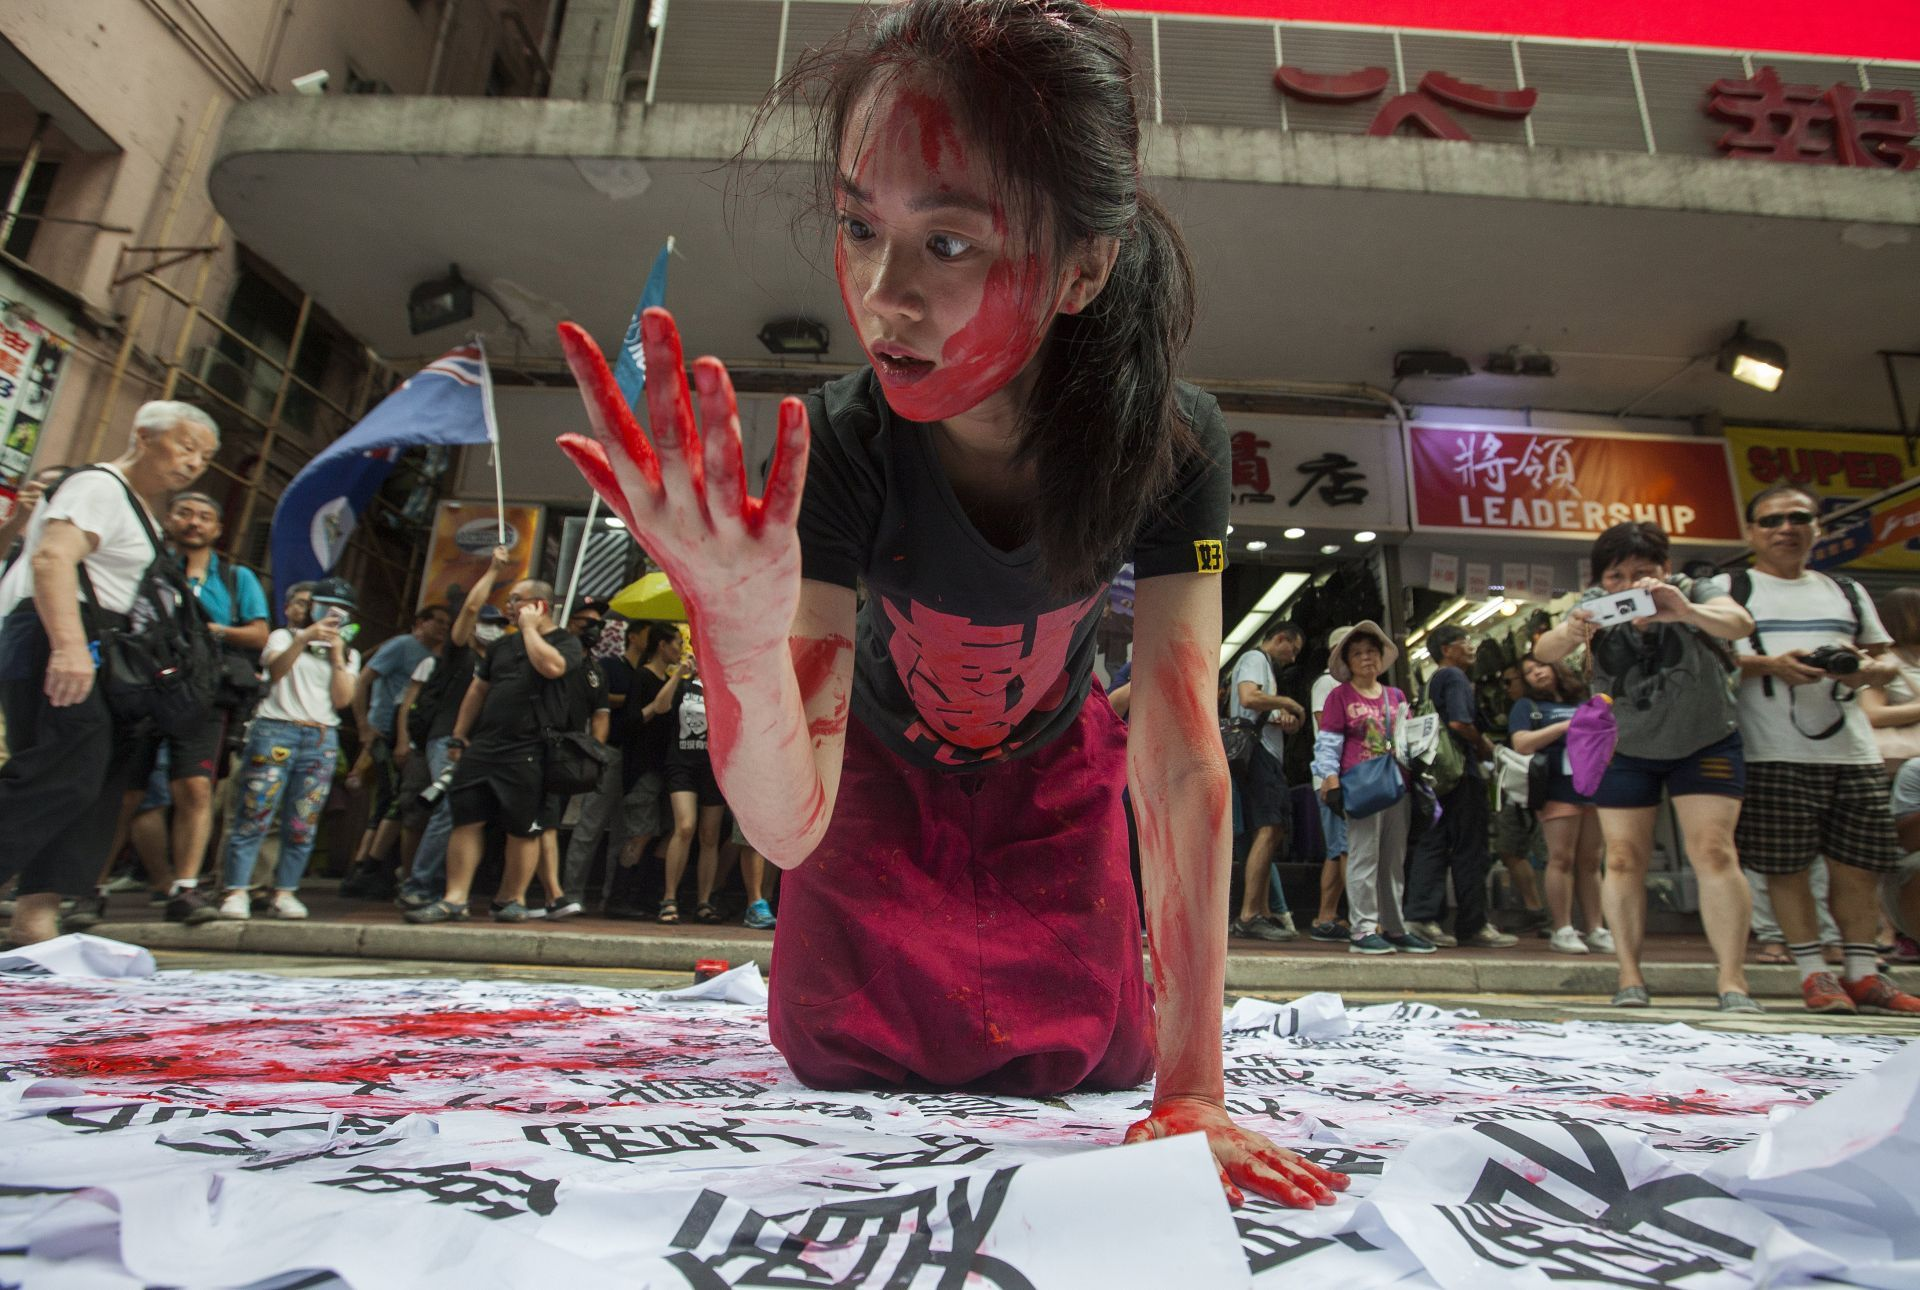 A pro-democracy performance artist acts on the theme of Chinese totalitarian rule in the streets of Hong Kong